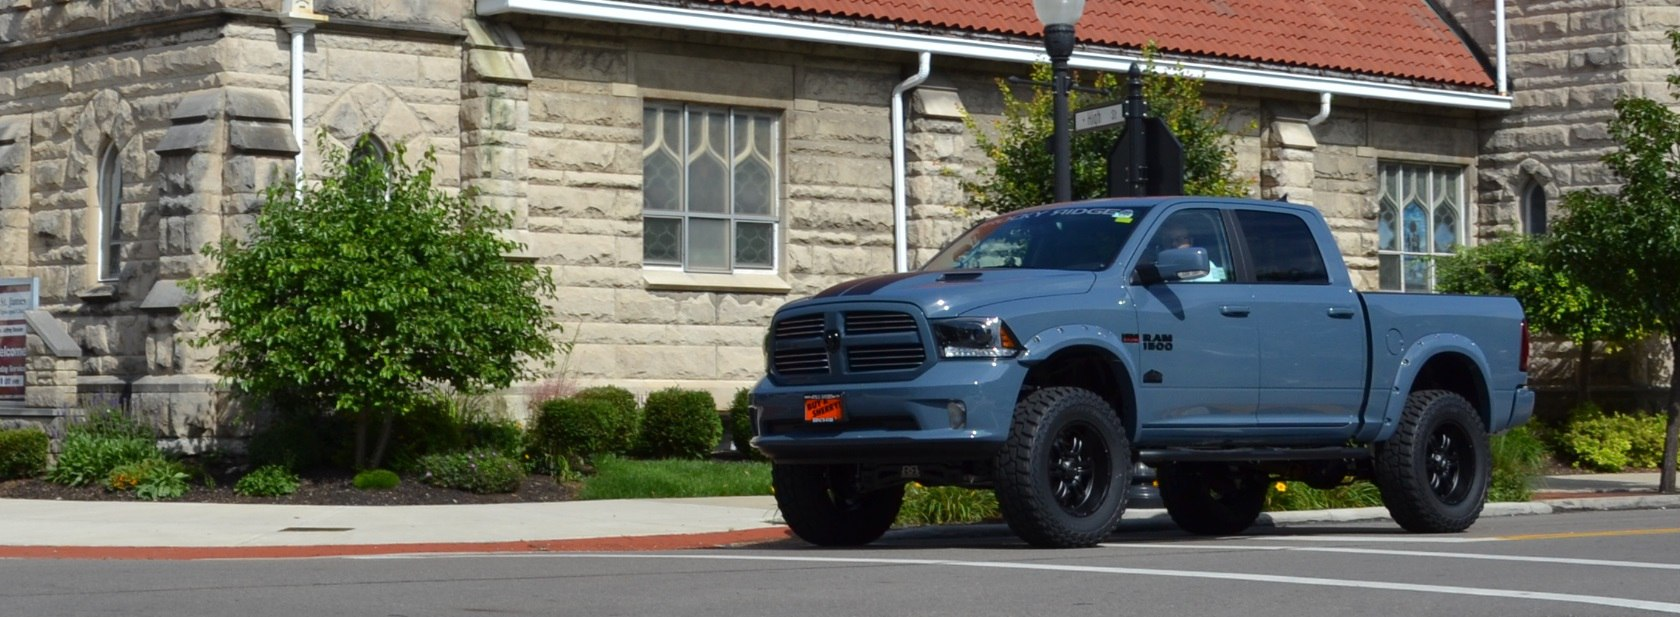 Lifted Trucks For Sale Kansas | Sherry 4x4